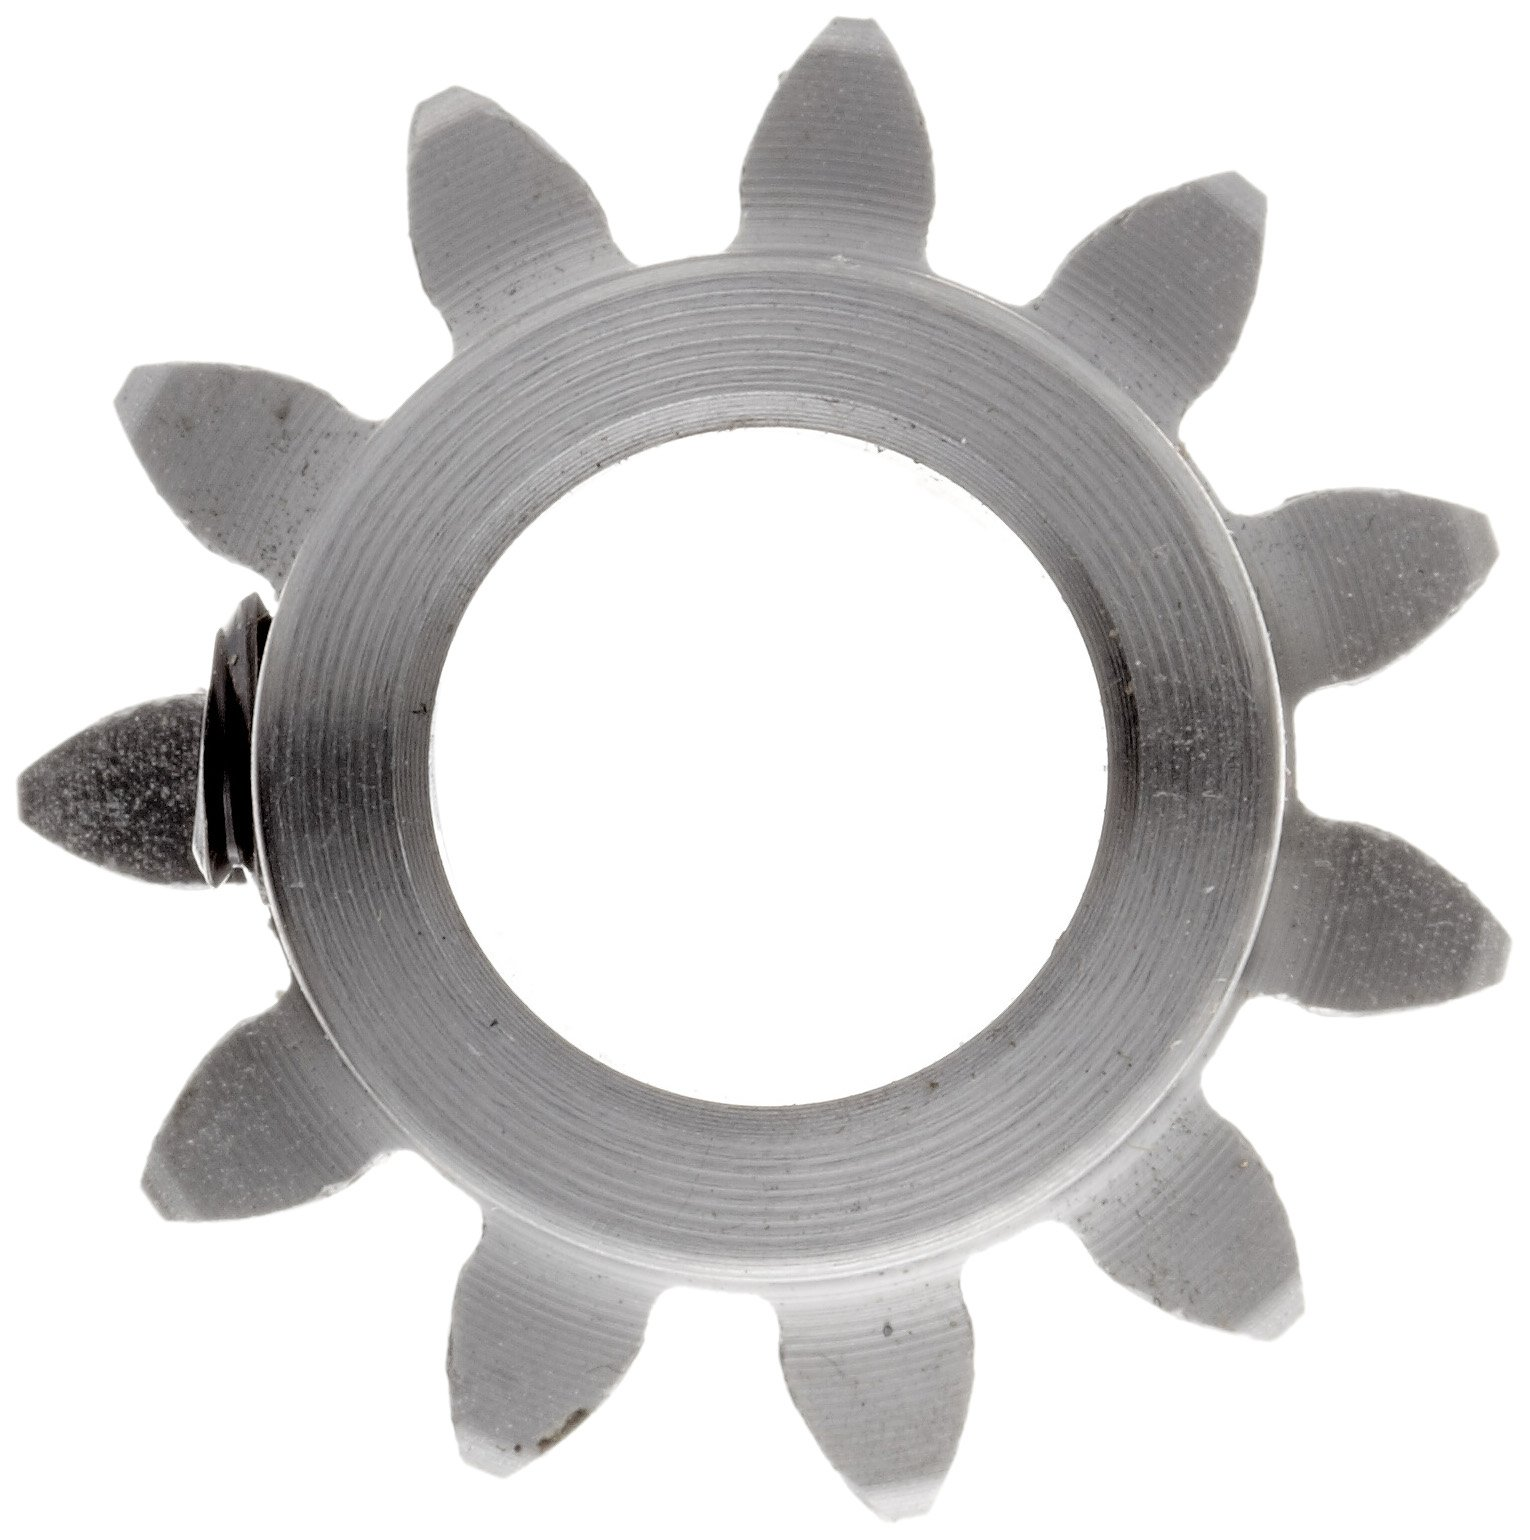 Boston Gear ND11B-1/2 Spur Gear, 14.5 Pressure Angle, Steel, Inch, 12 Pitch, 0.500'' Bore, 1.167'' OD, 0.750'' Face Width, 11 Teeth